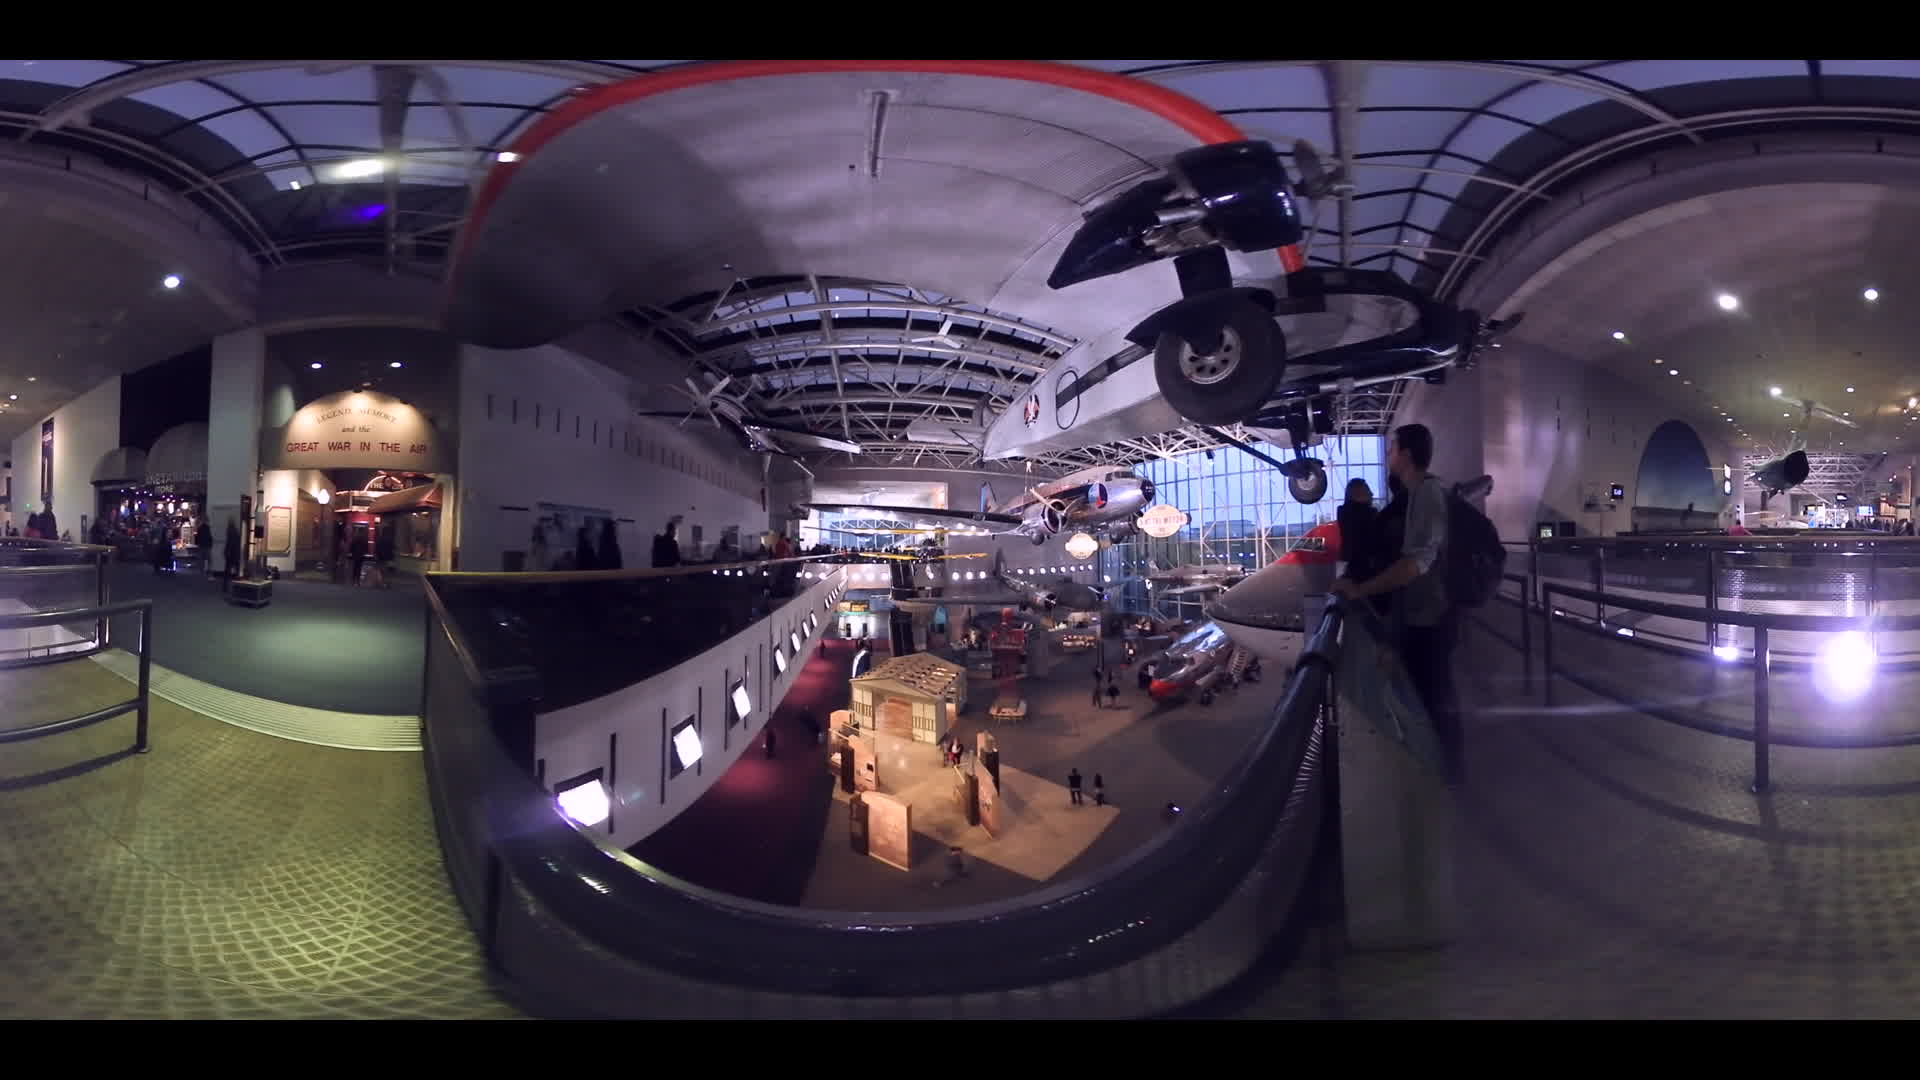 360 Degree Video Class 20th Century Plane in Smithsonian Air And Space Museum Hanger. 2:1 ratio for Virtual Reality Apps.